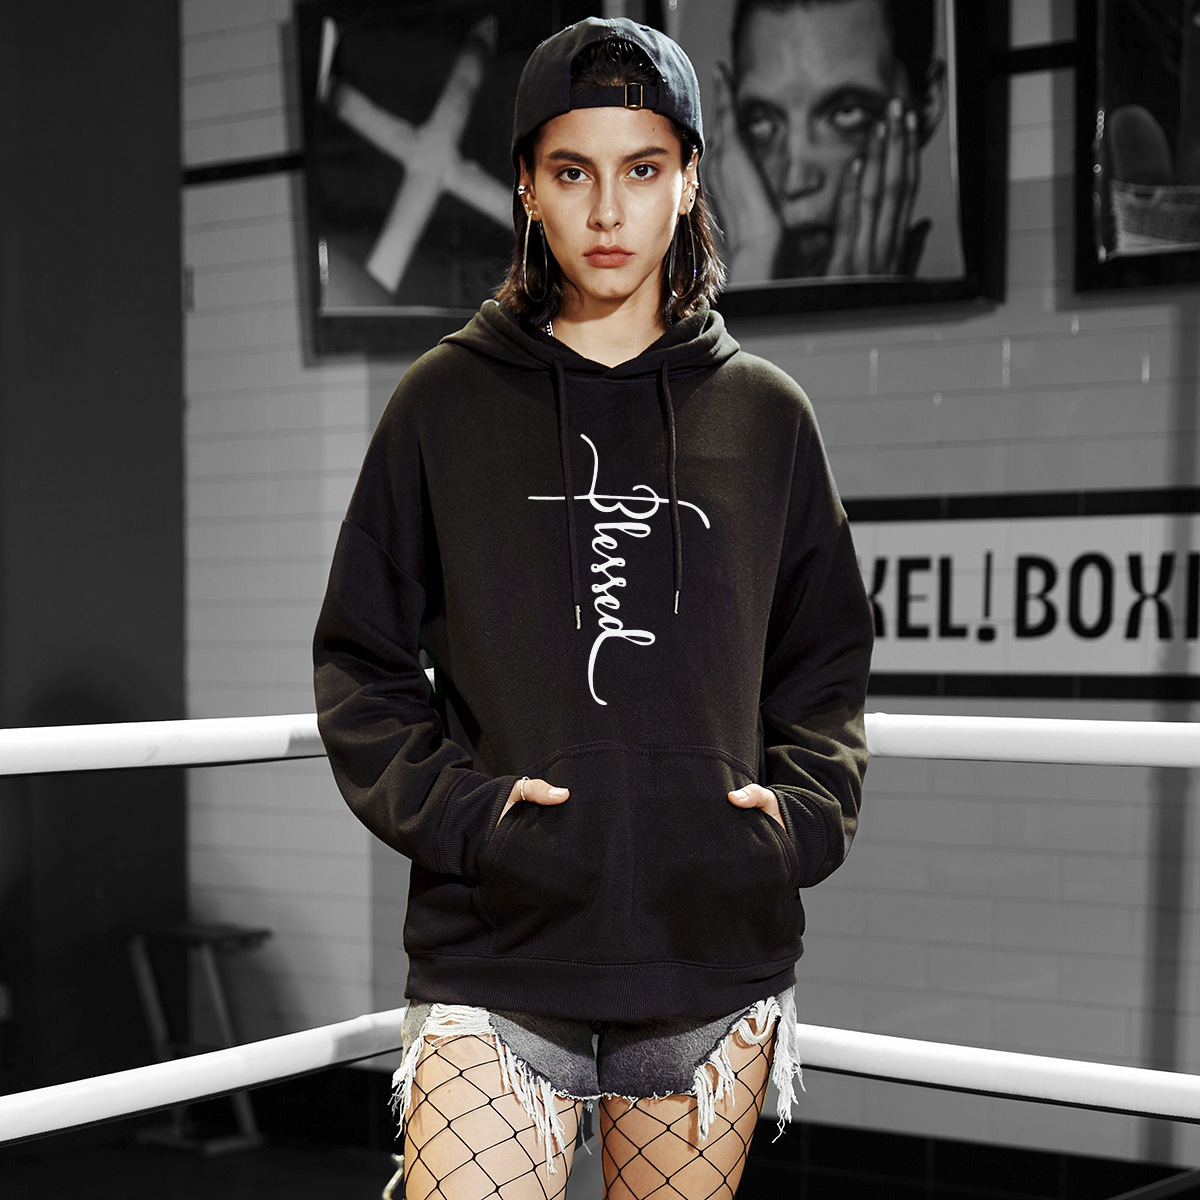 autumn and winter women's hooded sweater belief cross letters sweater NSSN4040